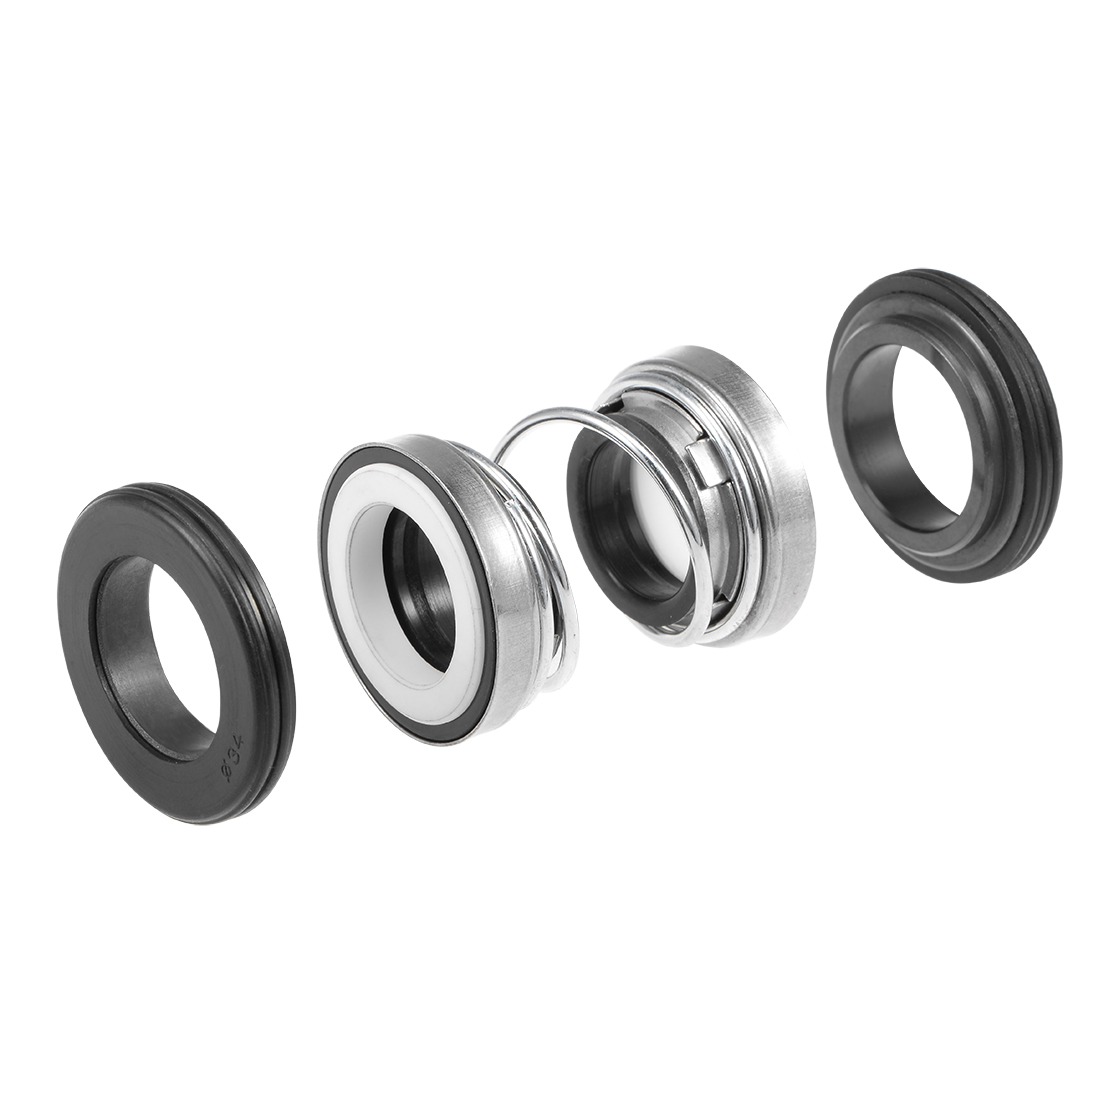 Mechanical Shaft Seal Replacement for Pool Spa Pump 202-18 - image 2 de 3